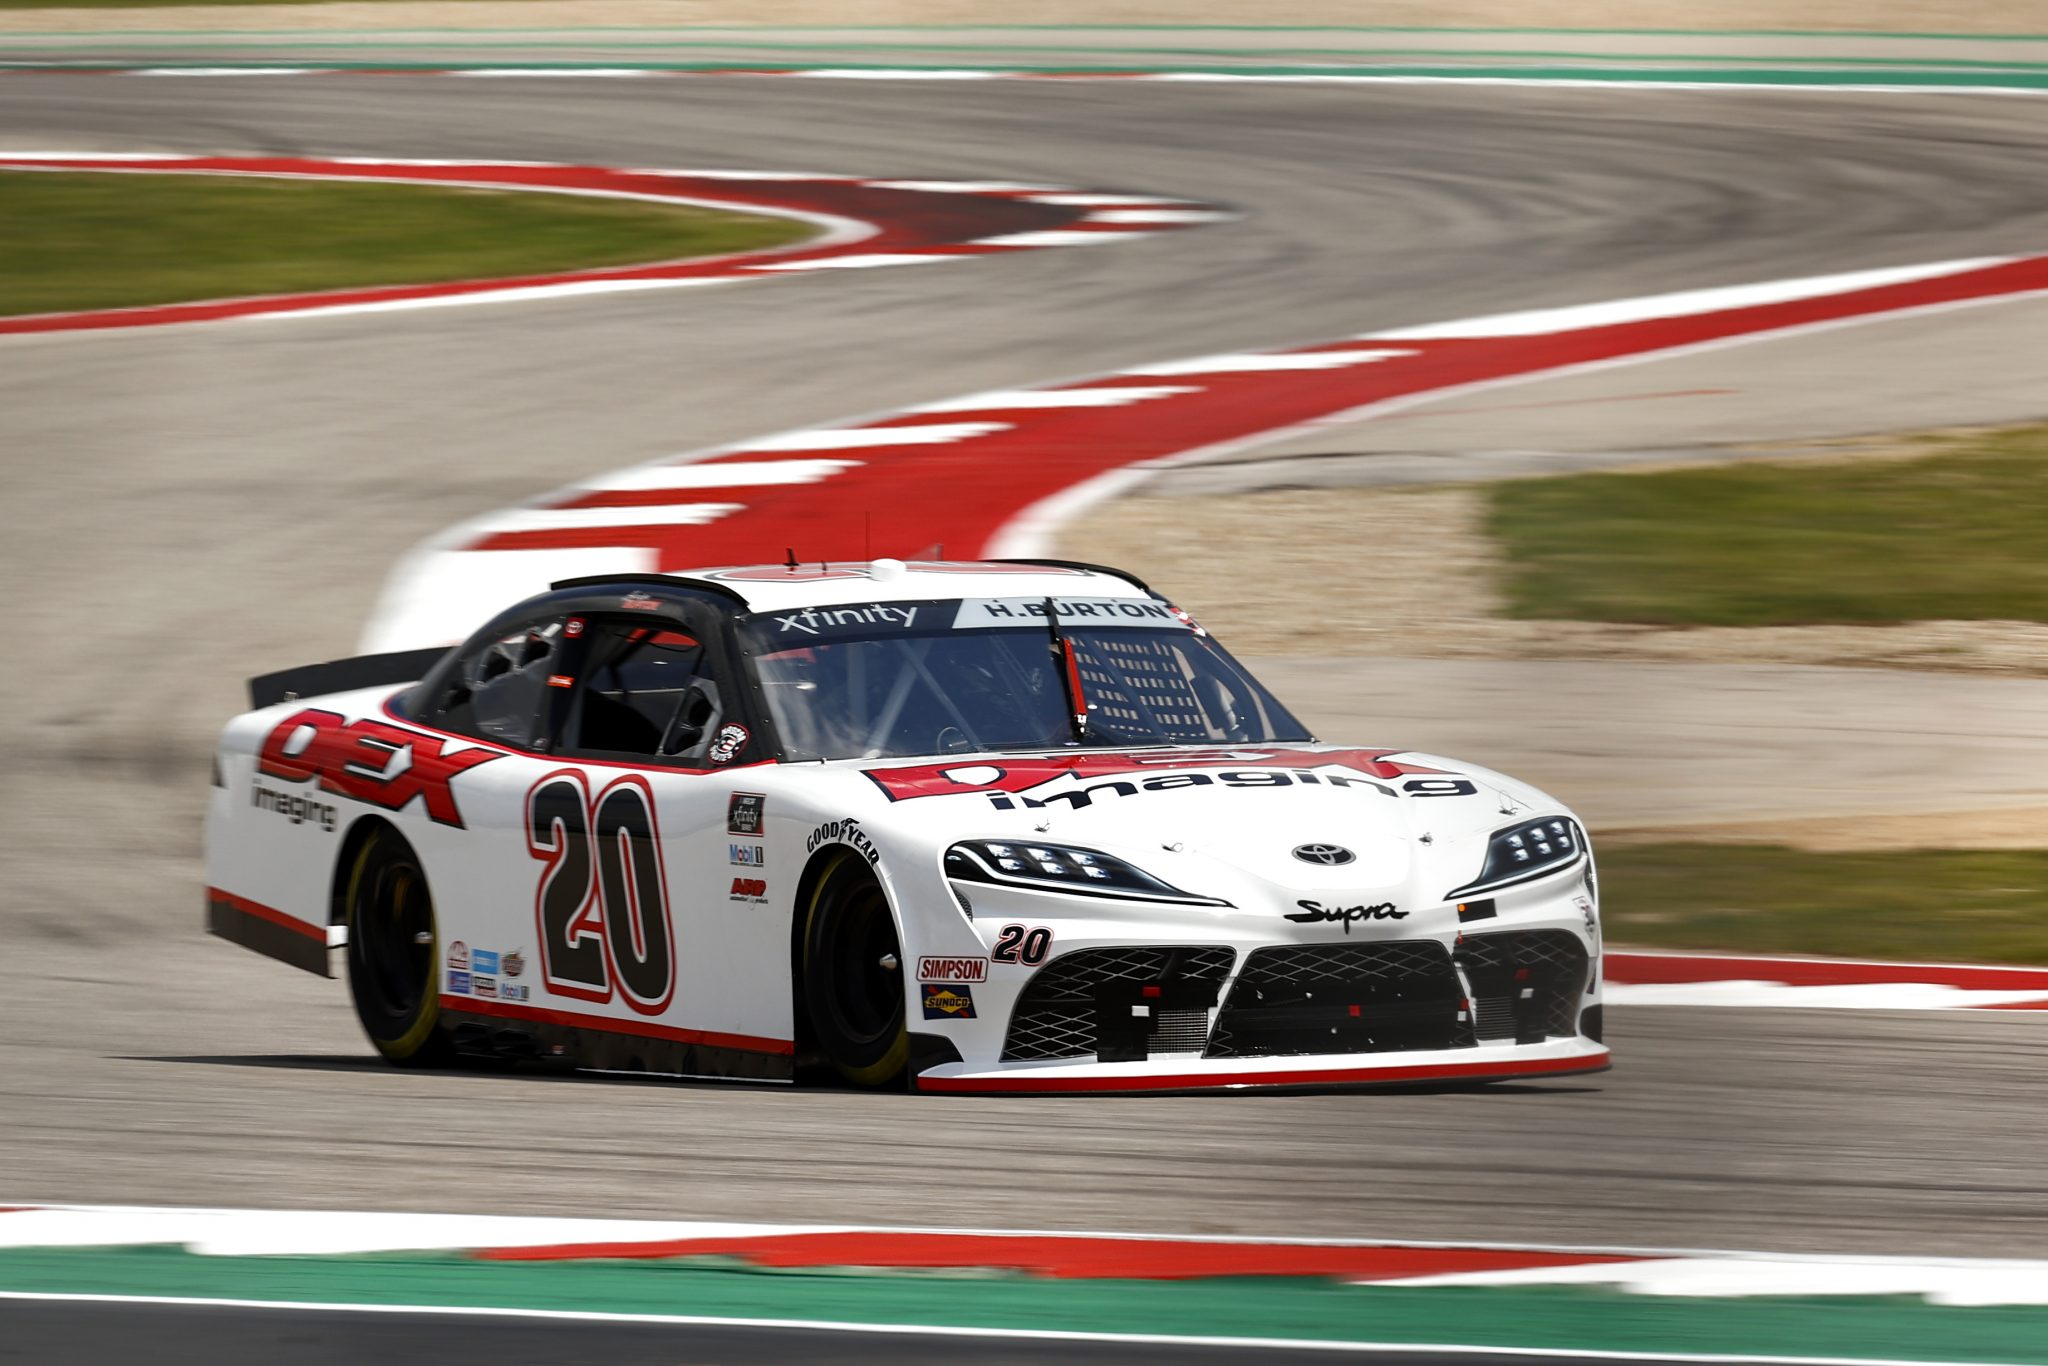 AUSTIN, TEXAS - MAY 21: Harrison Burton, driver of the #20 DEX Imaging Toyota, drives during practice for the NASCAR Xfinity Series Pit Boss 250 at Circuit of The Americas on May 21, 2021 in Austin, Texas. (Photo by Jared C. Tilton/Getty Images) | Getty Images